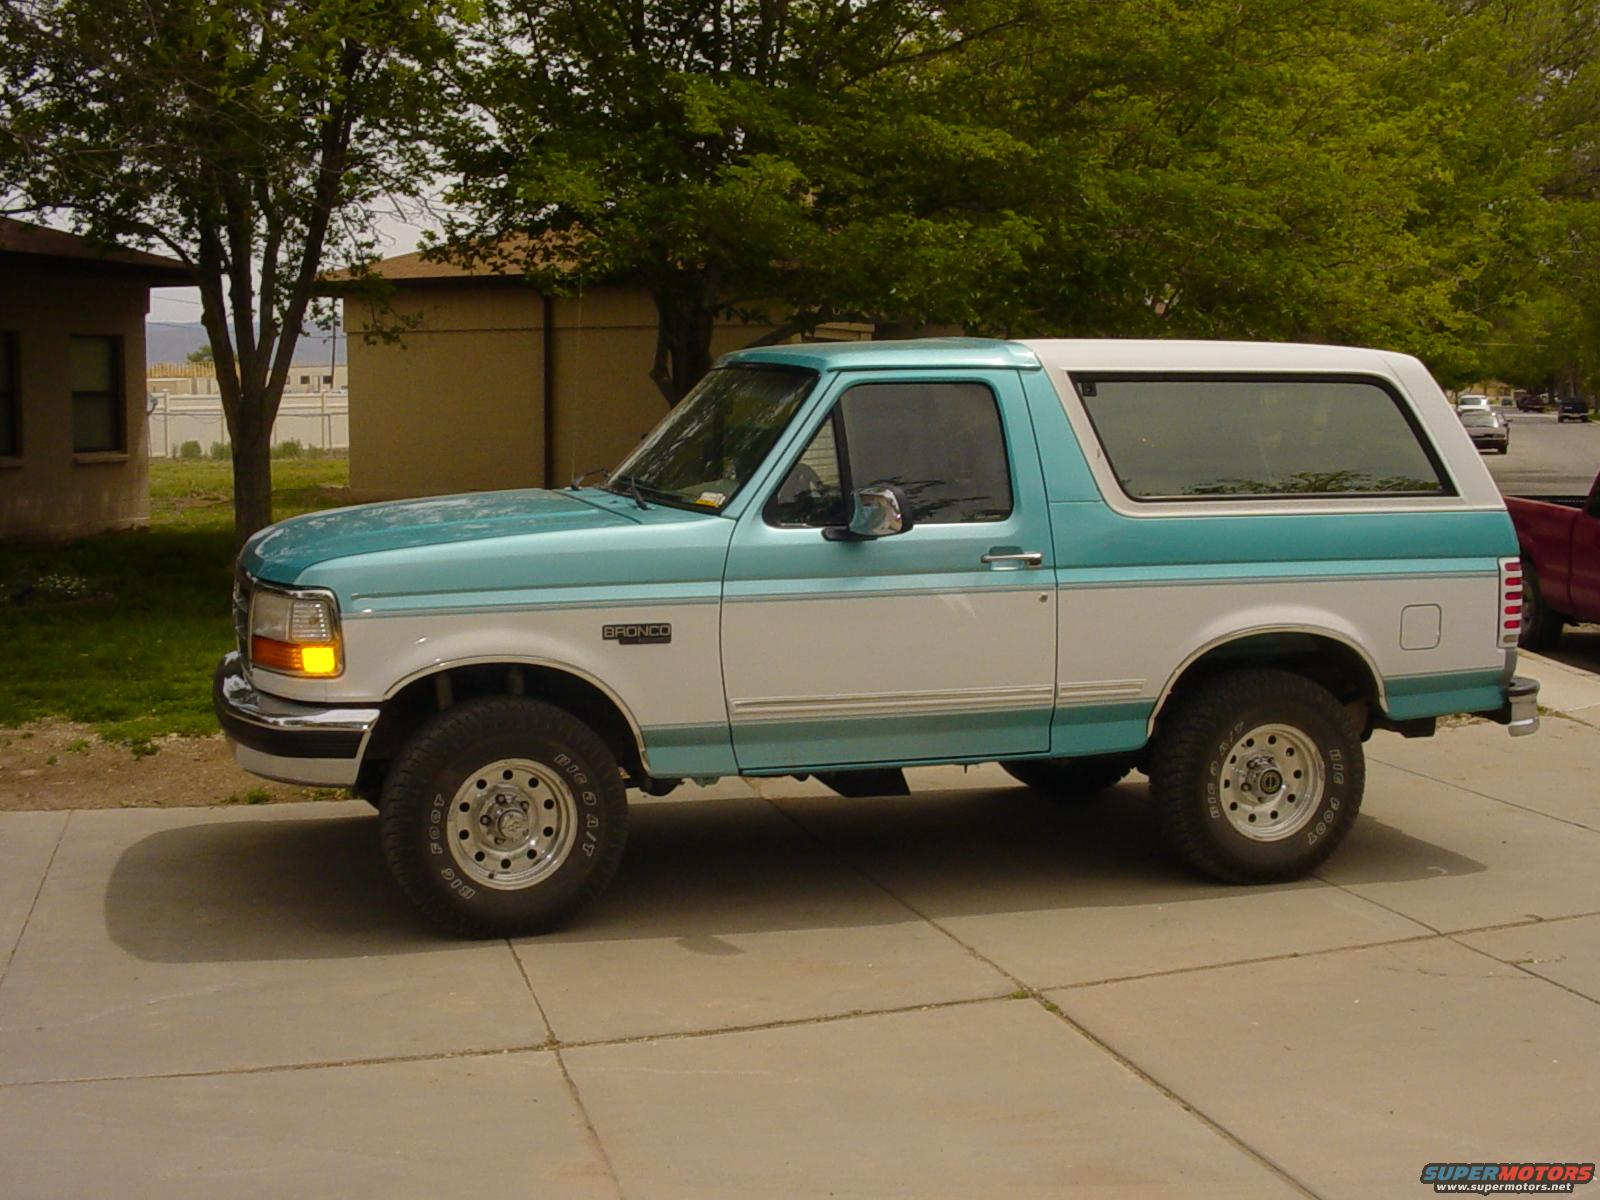 1995 Ford Bronco Bronco PIX picture | SuperMotors.net